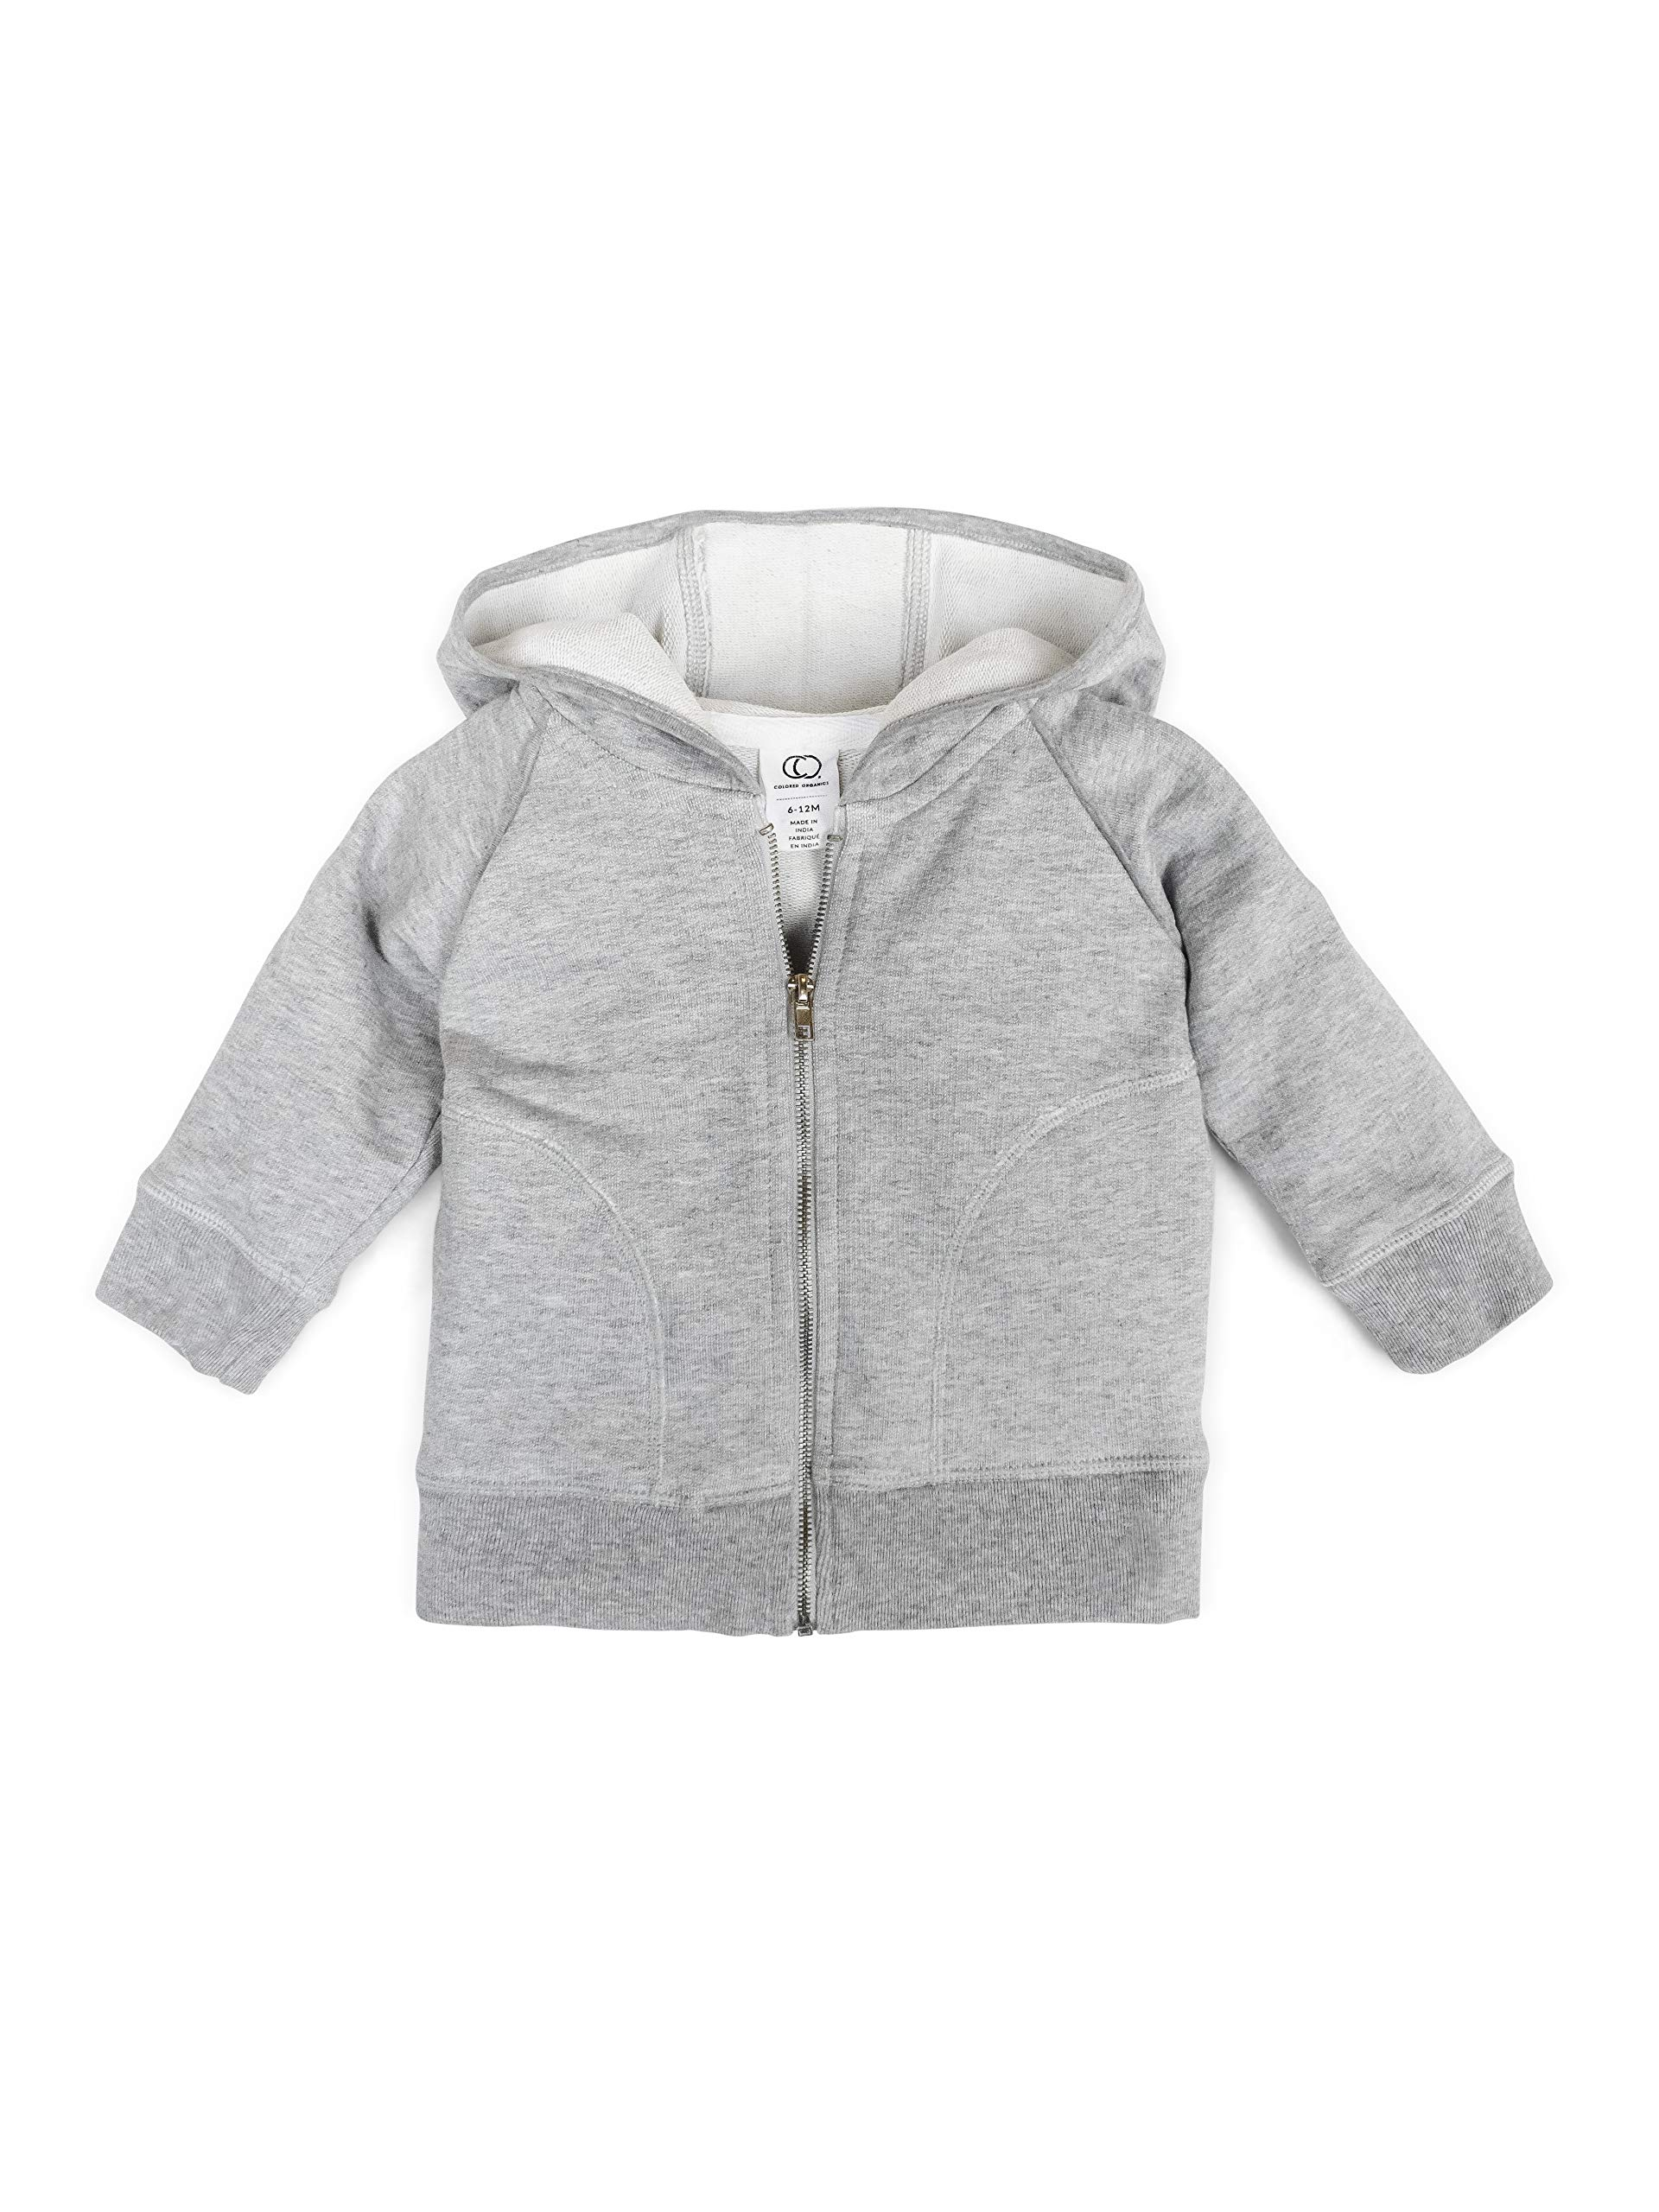 Colored Organics Baby, Toddler, and Kids Organic Cotton Zip-Up Hoodie Sweatshirt - Heather Grey - 6-12M by Colored Organics